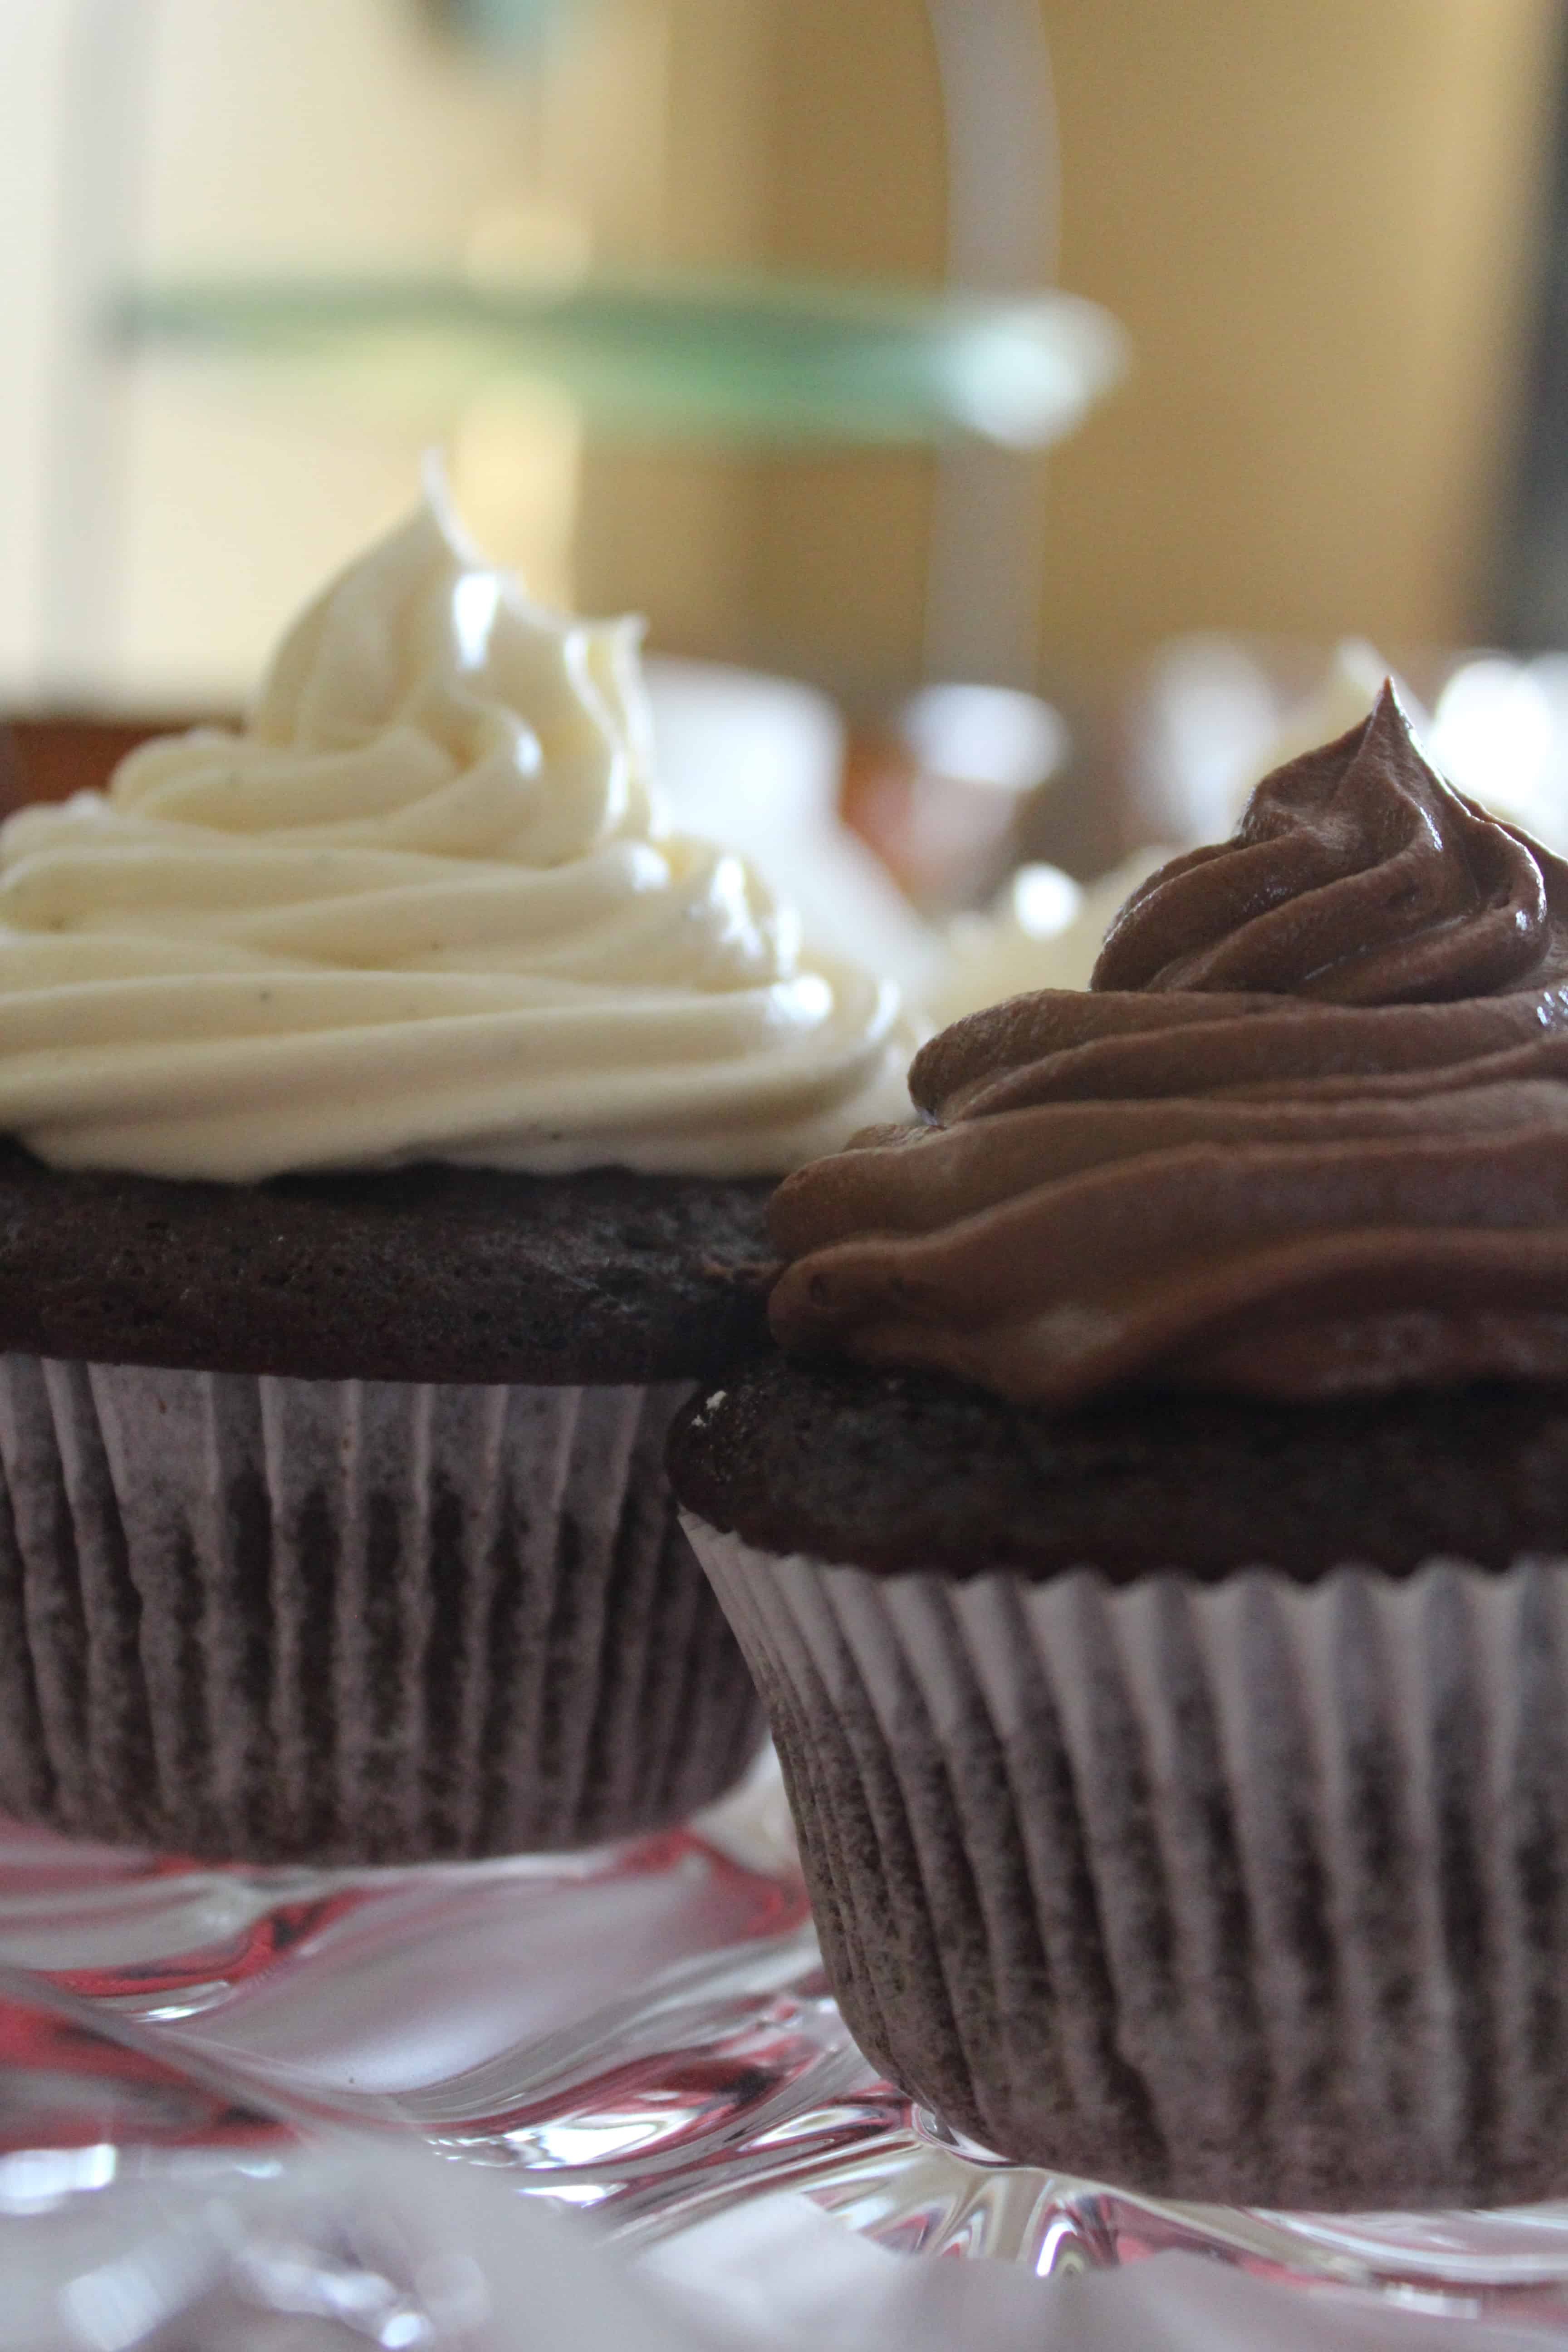 eatpicks-frosted-cupcakes